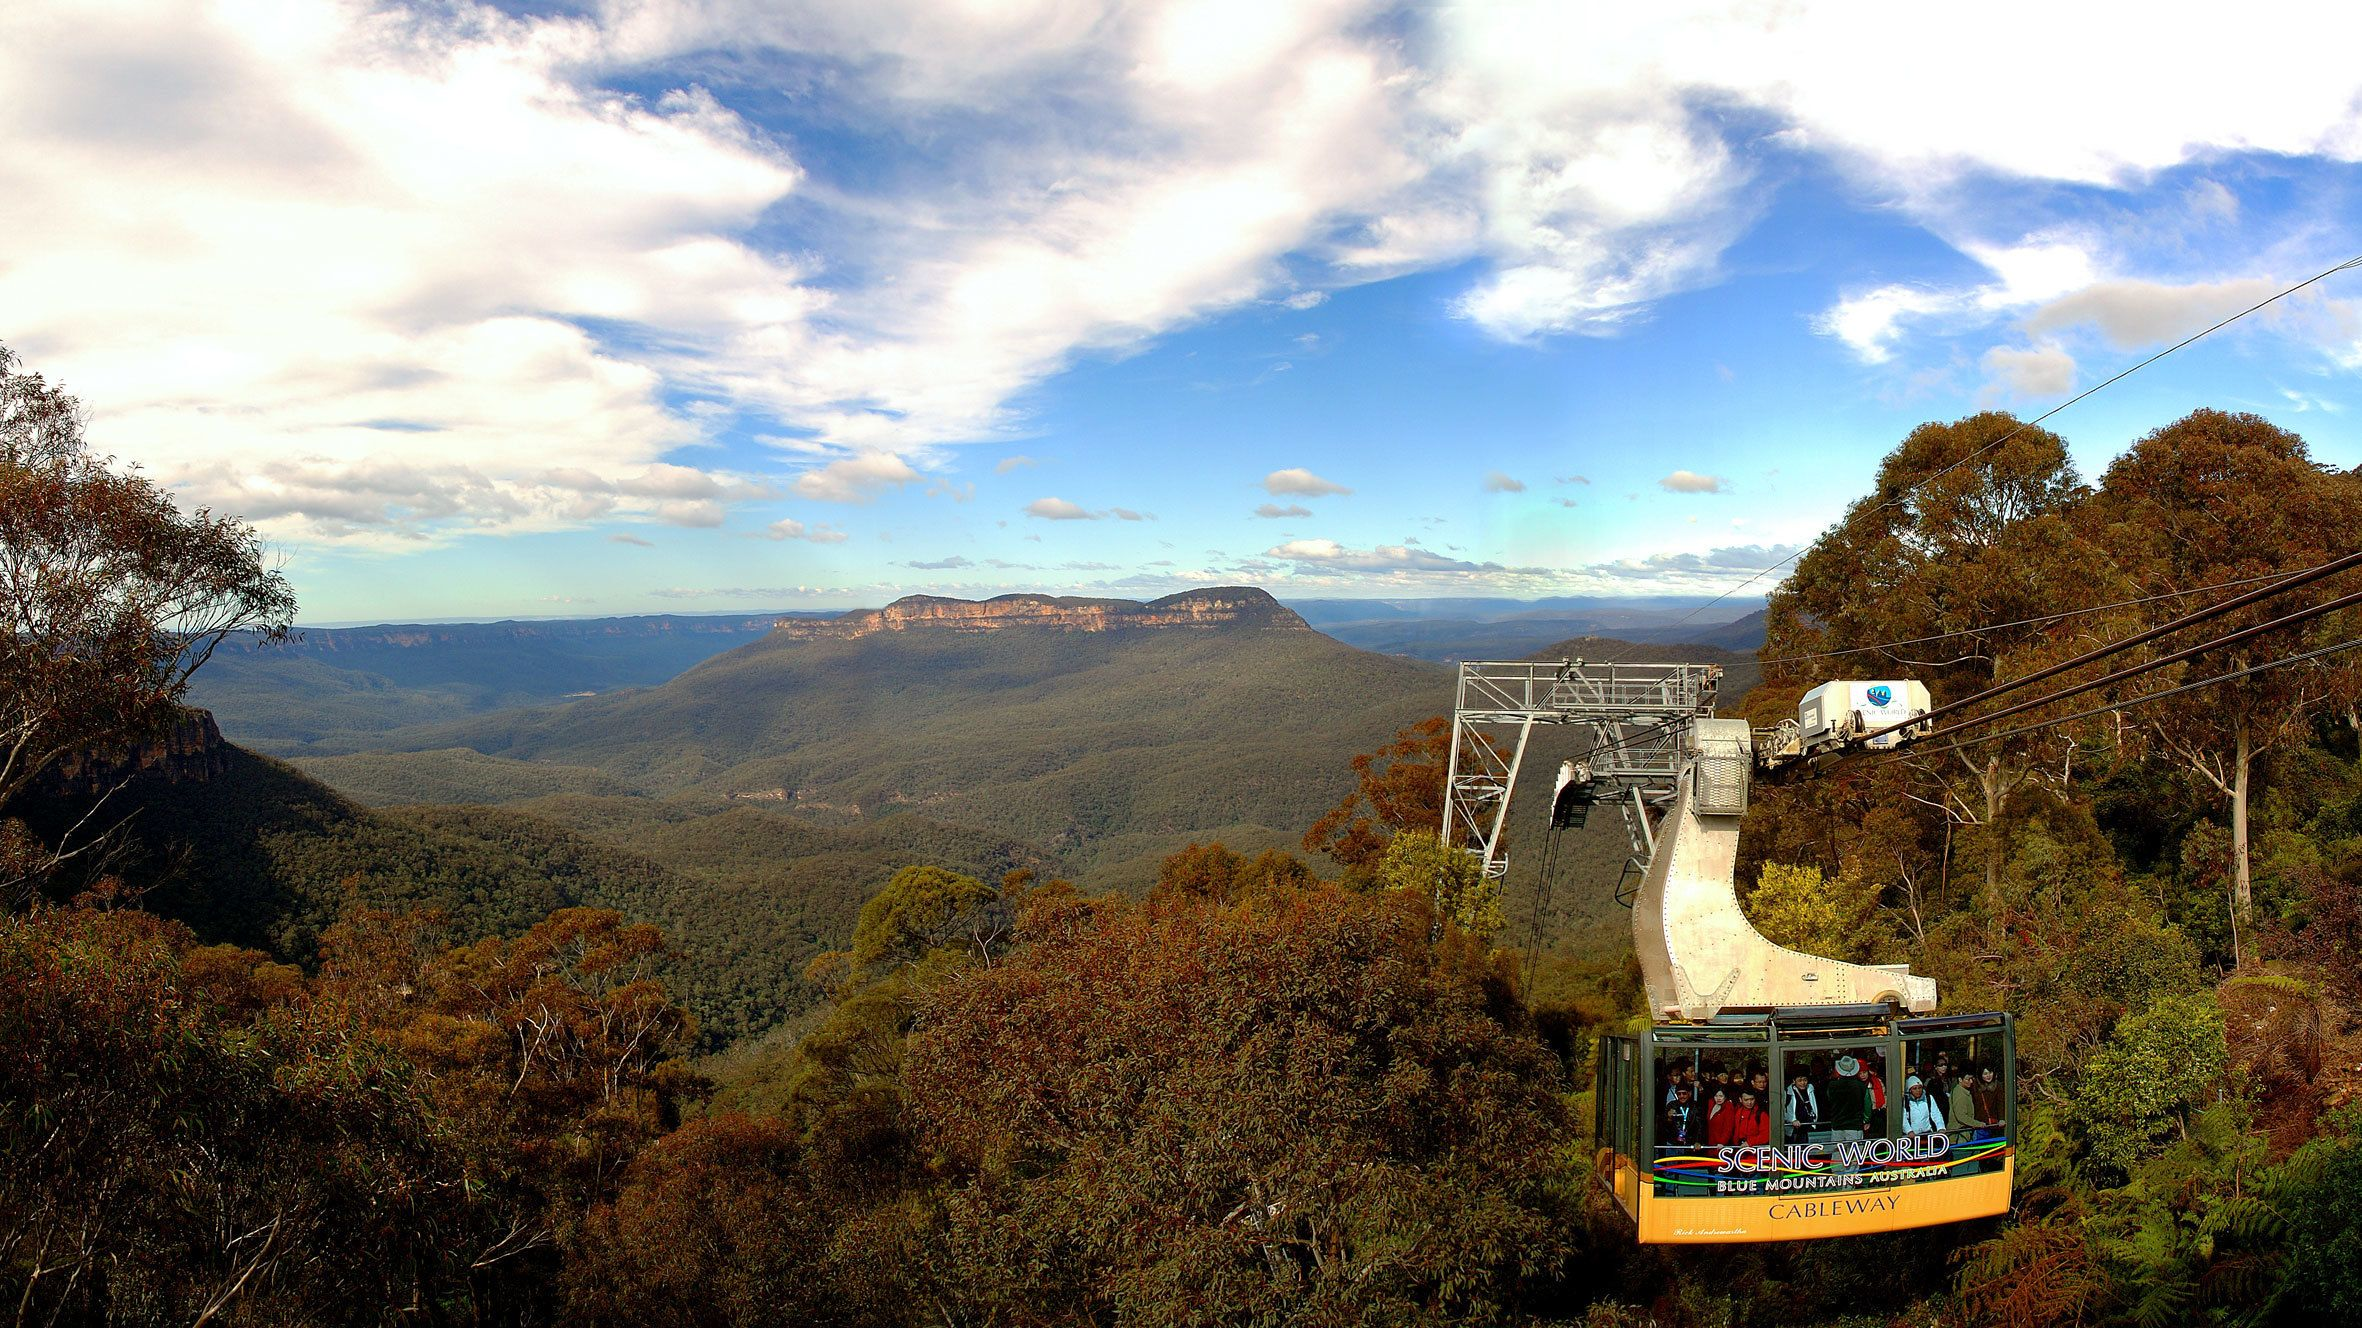 taking the cableway up the mountain in Australia